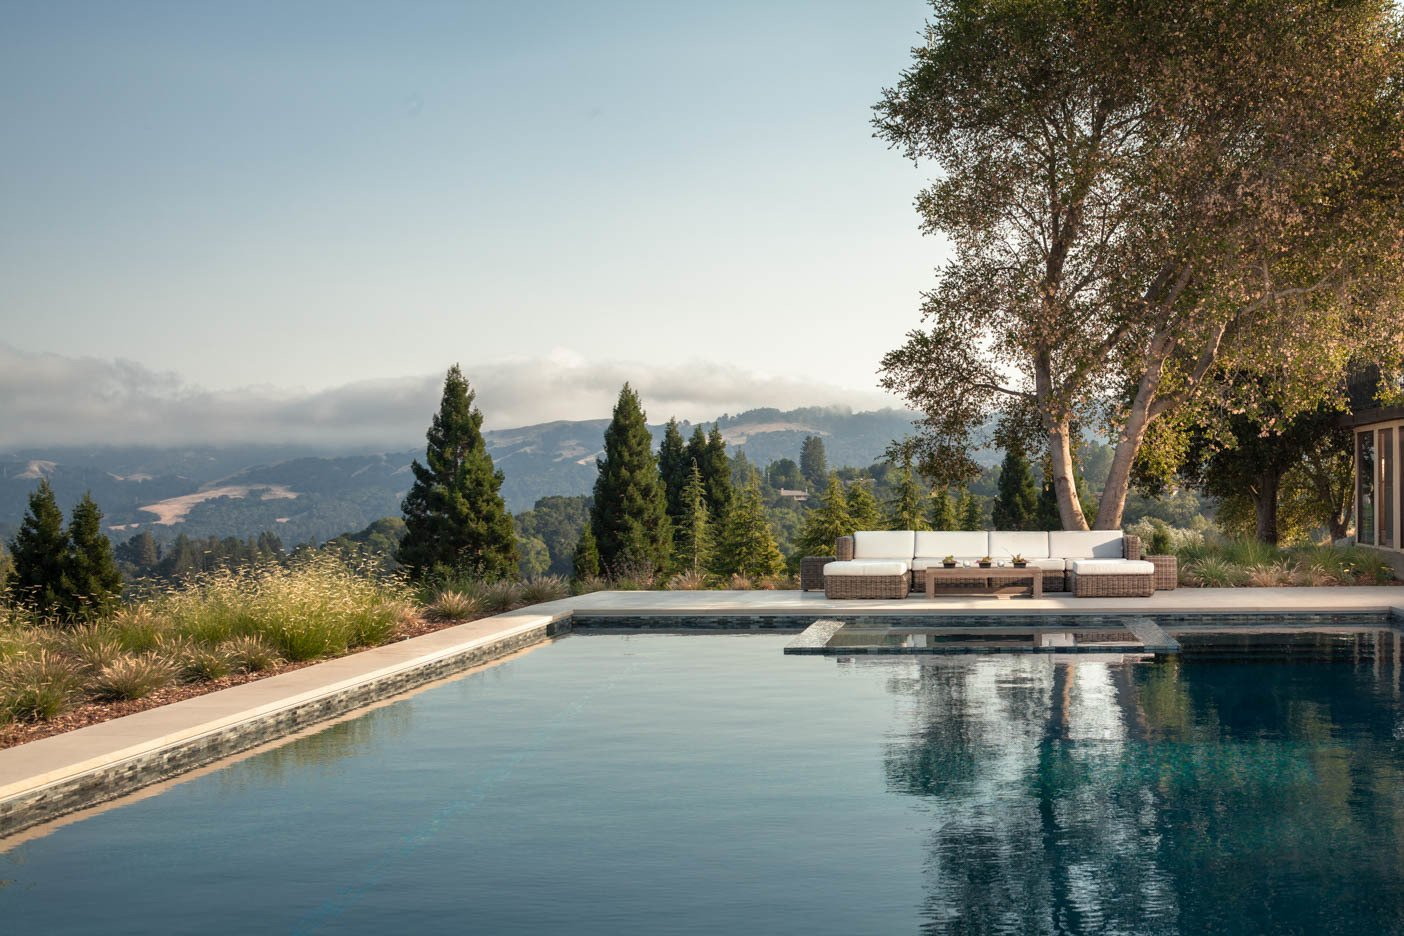 Outdoor, Hardscapes, Large Pools, Tubs, Shower, Back Yard, and Large Patio, Porch, Deck  A pool with a view by Agnieszka Jakubowicz